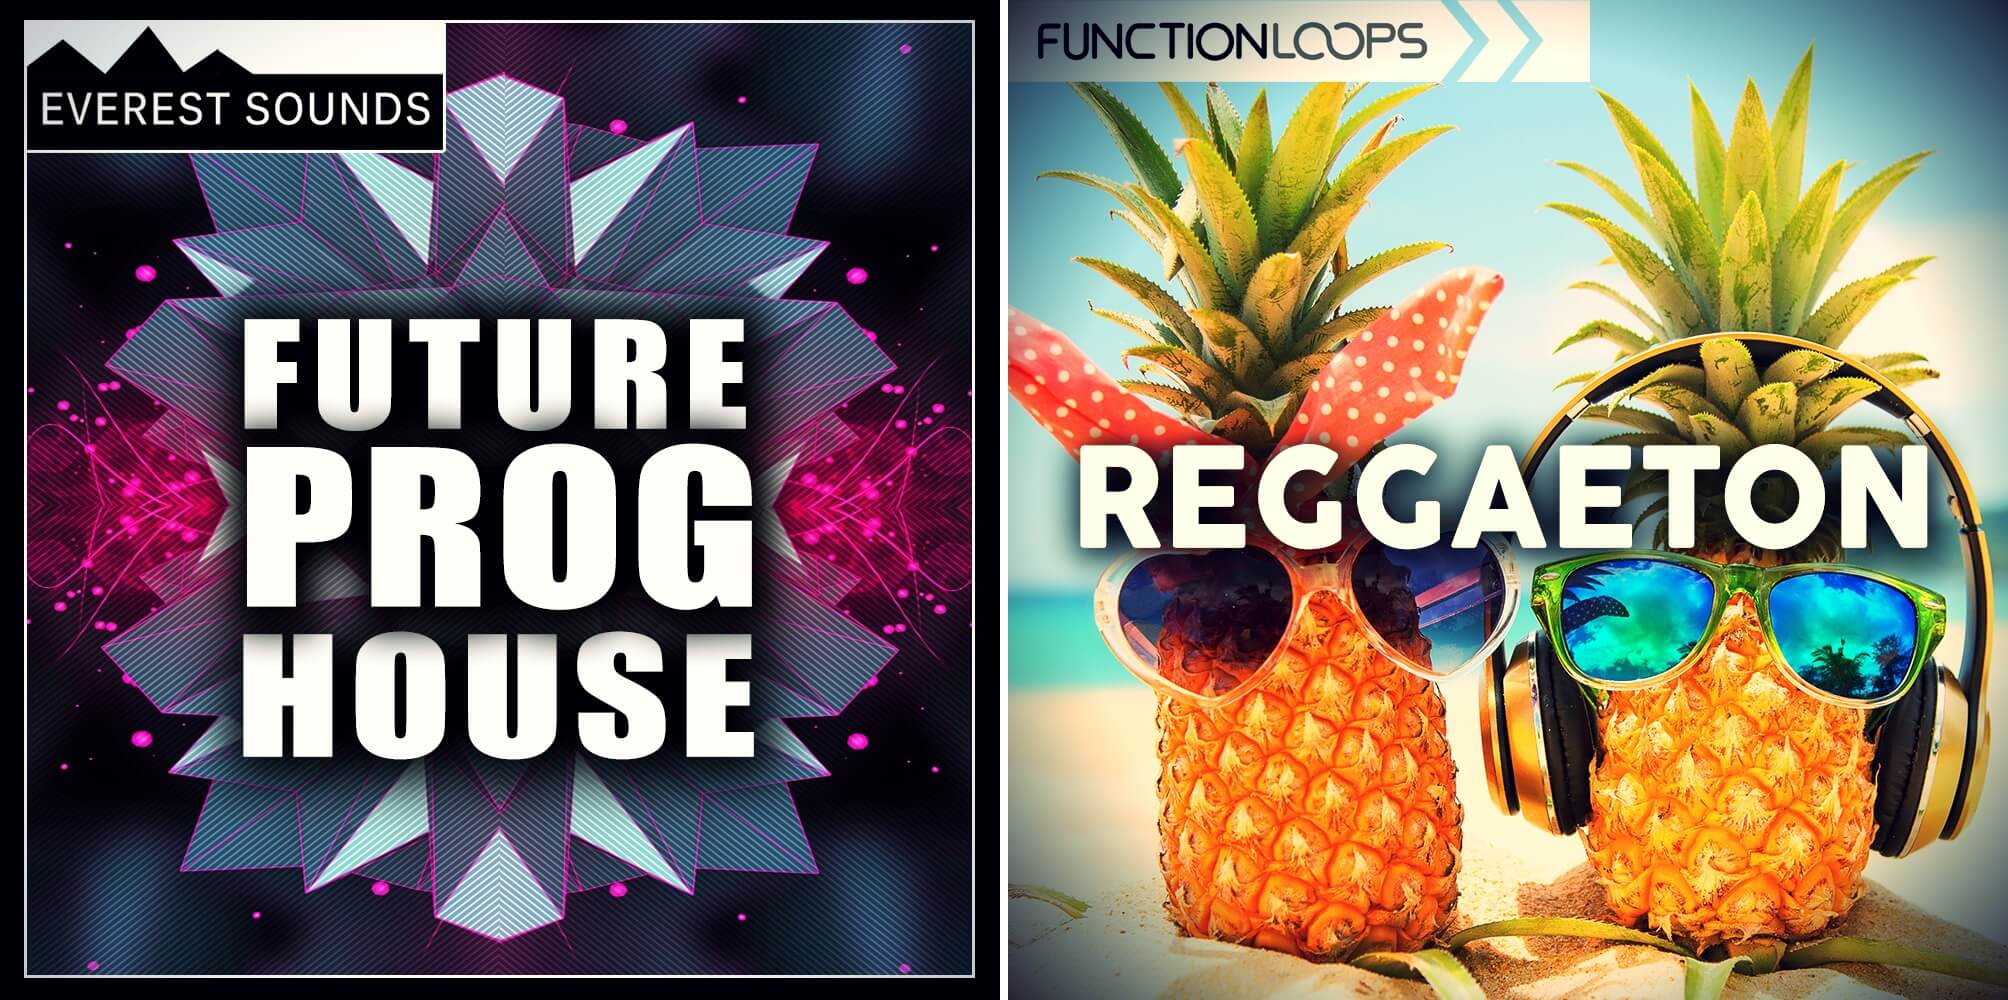 Function Loops Future Prog House and Reggaeton